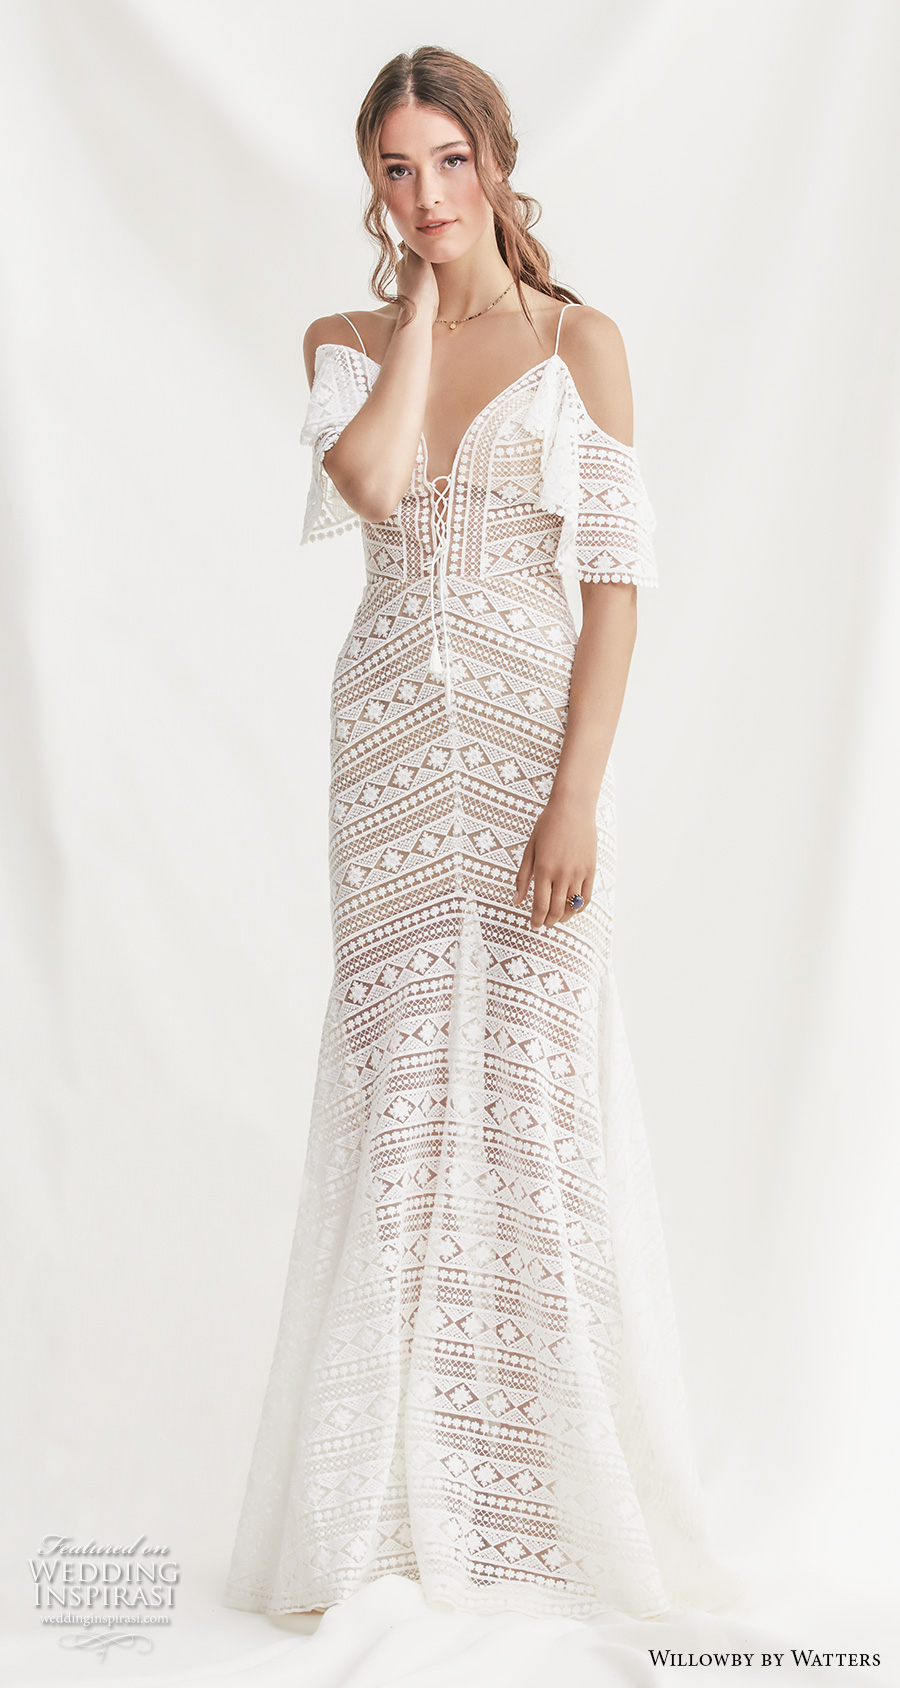 willowby by watters spring 2019 bridal cold shoulder half sleeves deep sweetheart neckline full embellishment romantic bohemian fit and flare wedding dress backless sweep train (13) mv